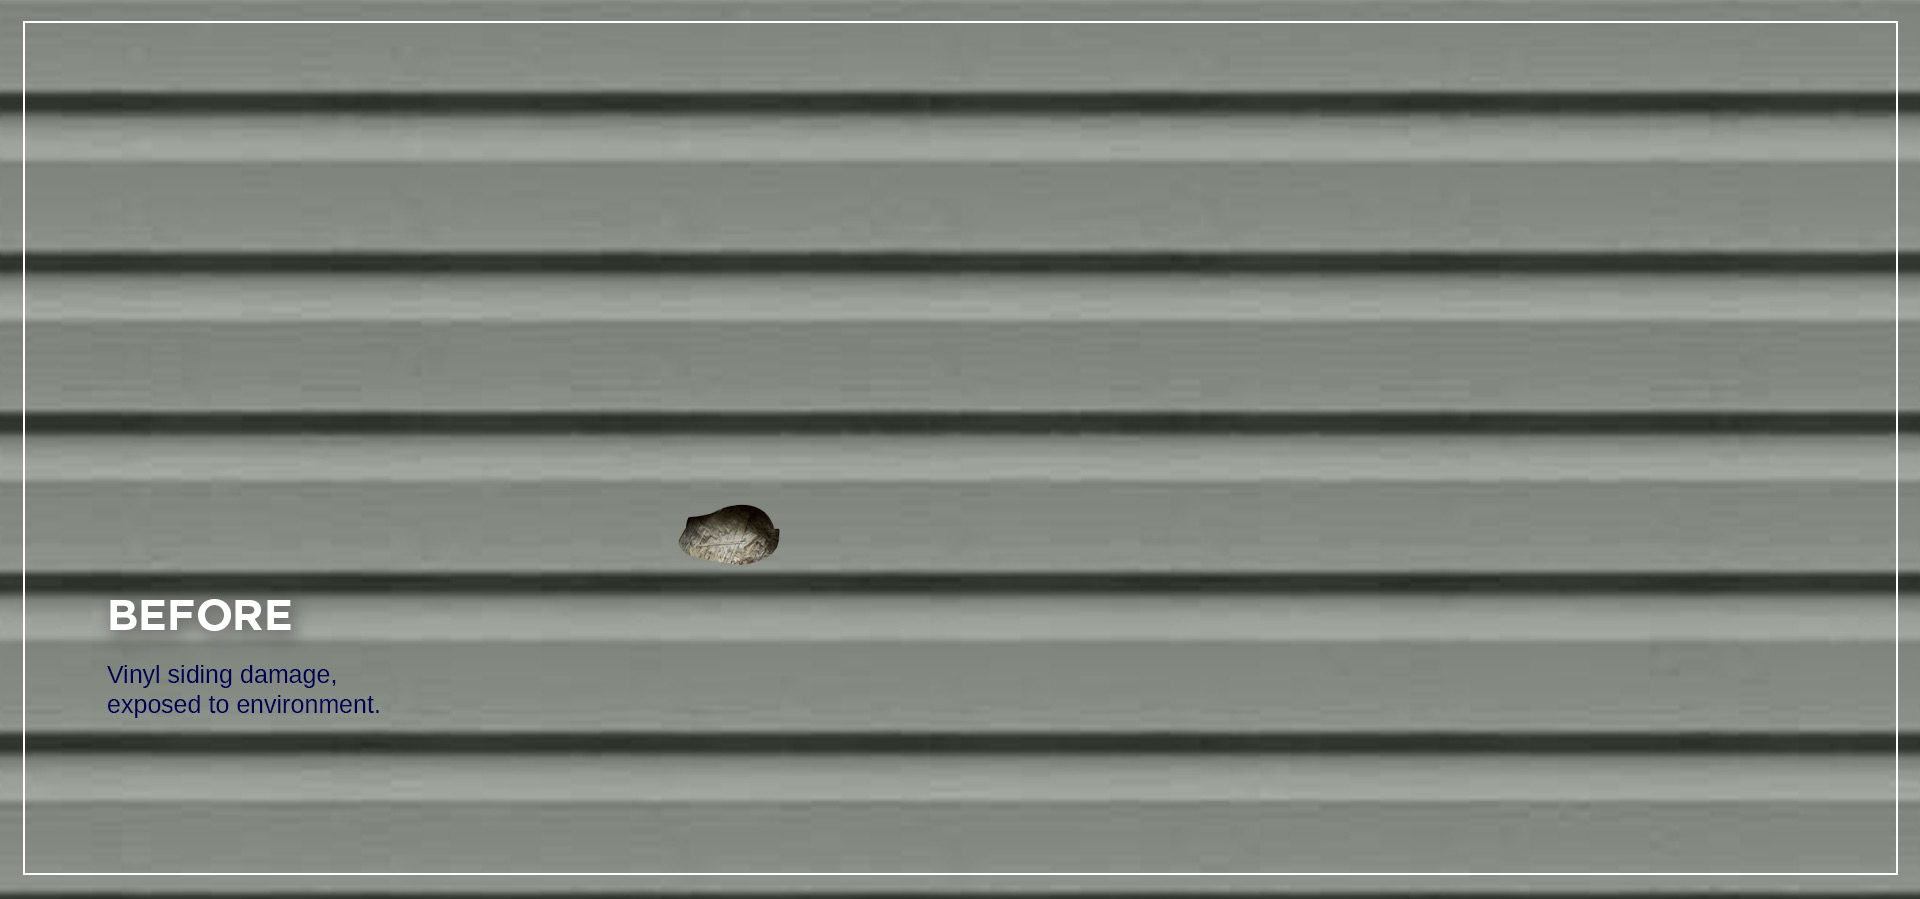 vinyl-siding-damage-hole